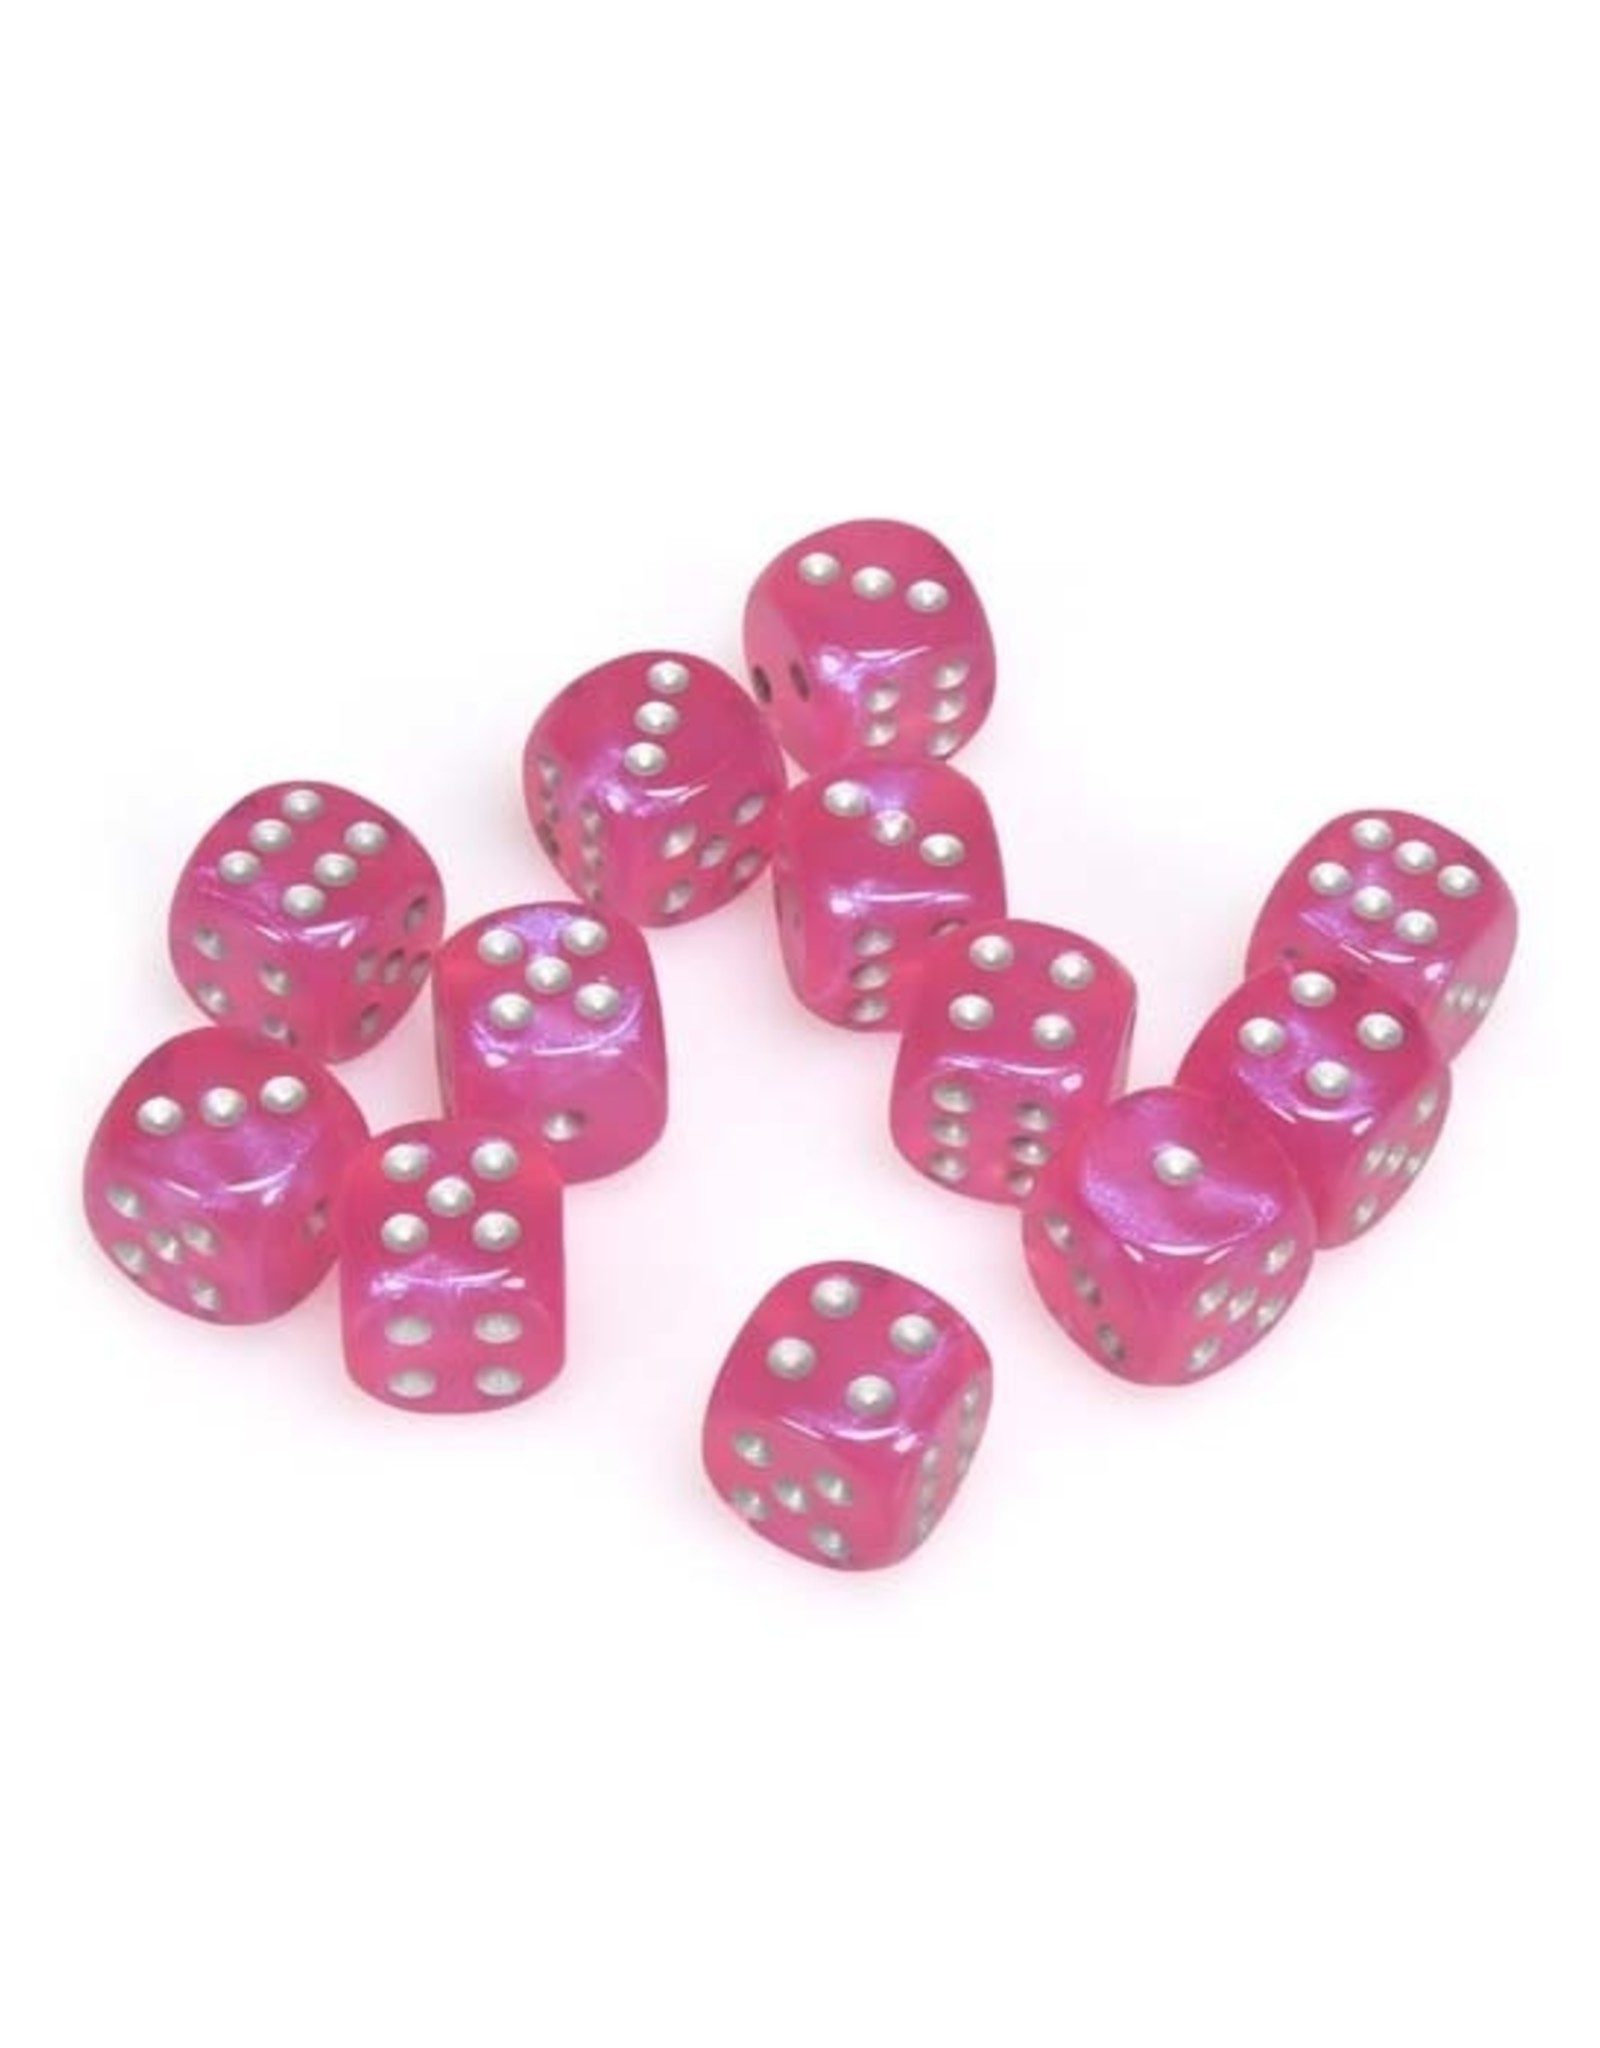 Chessex Chessex: 16mm D6 - Borealis - Pink w/ Silver